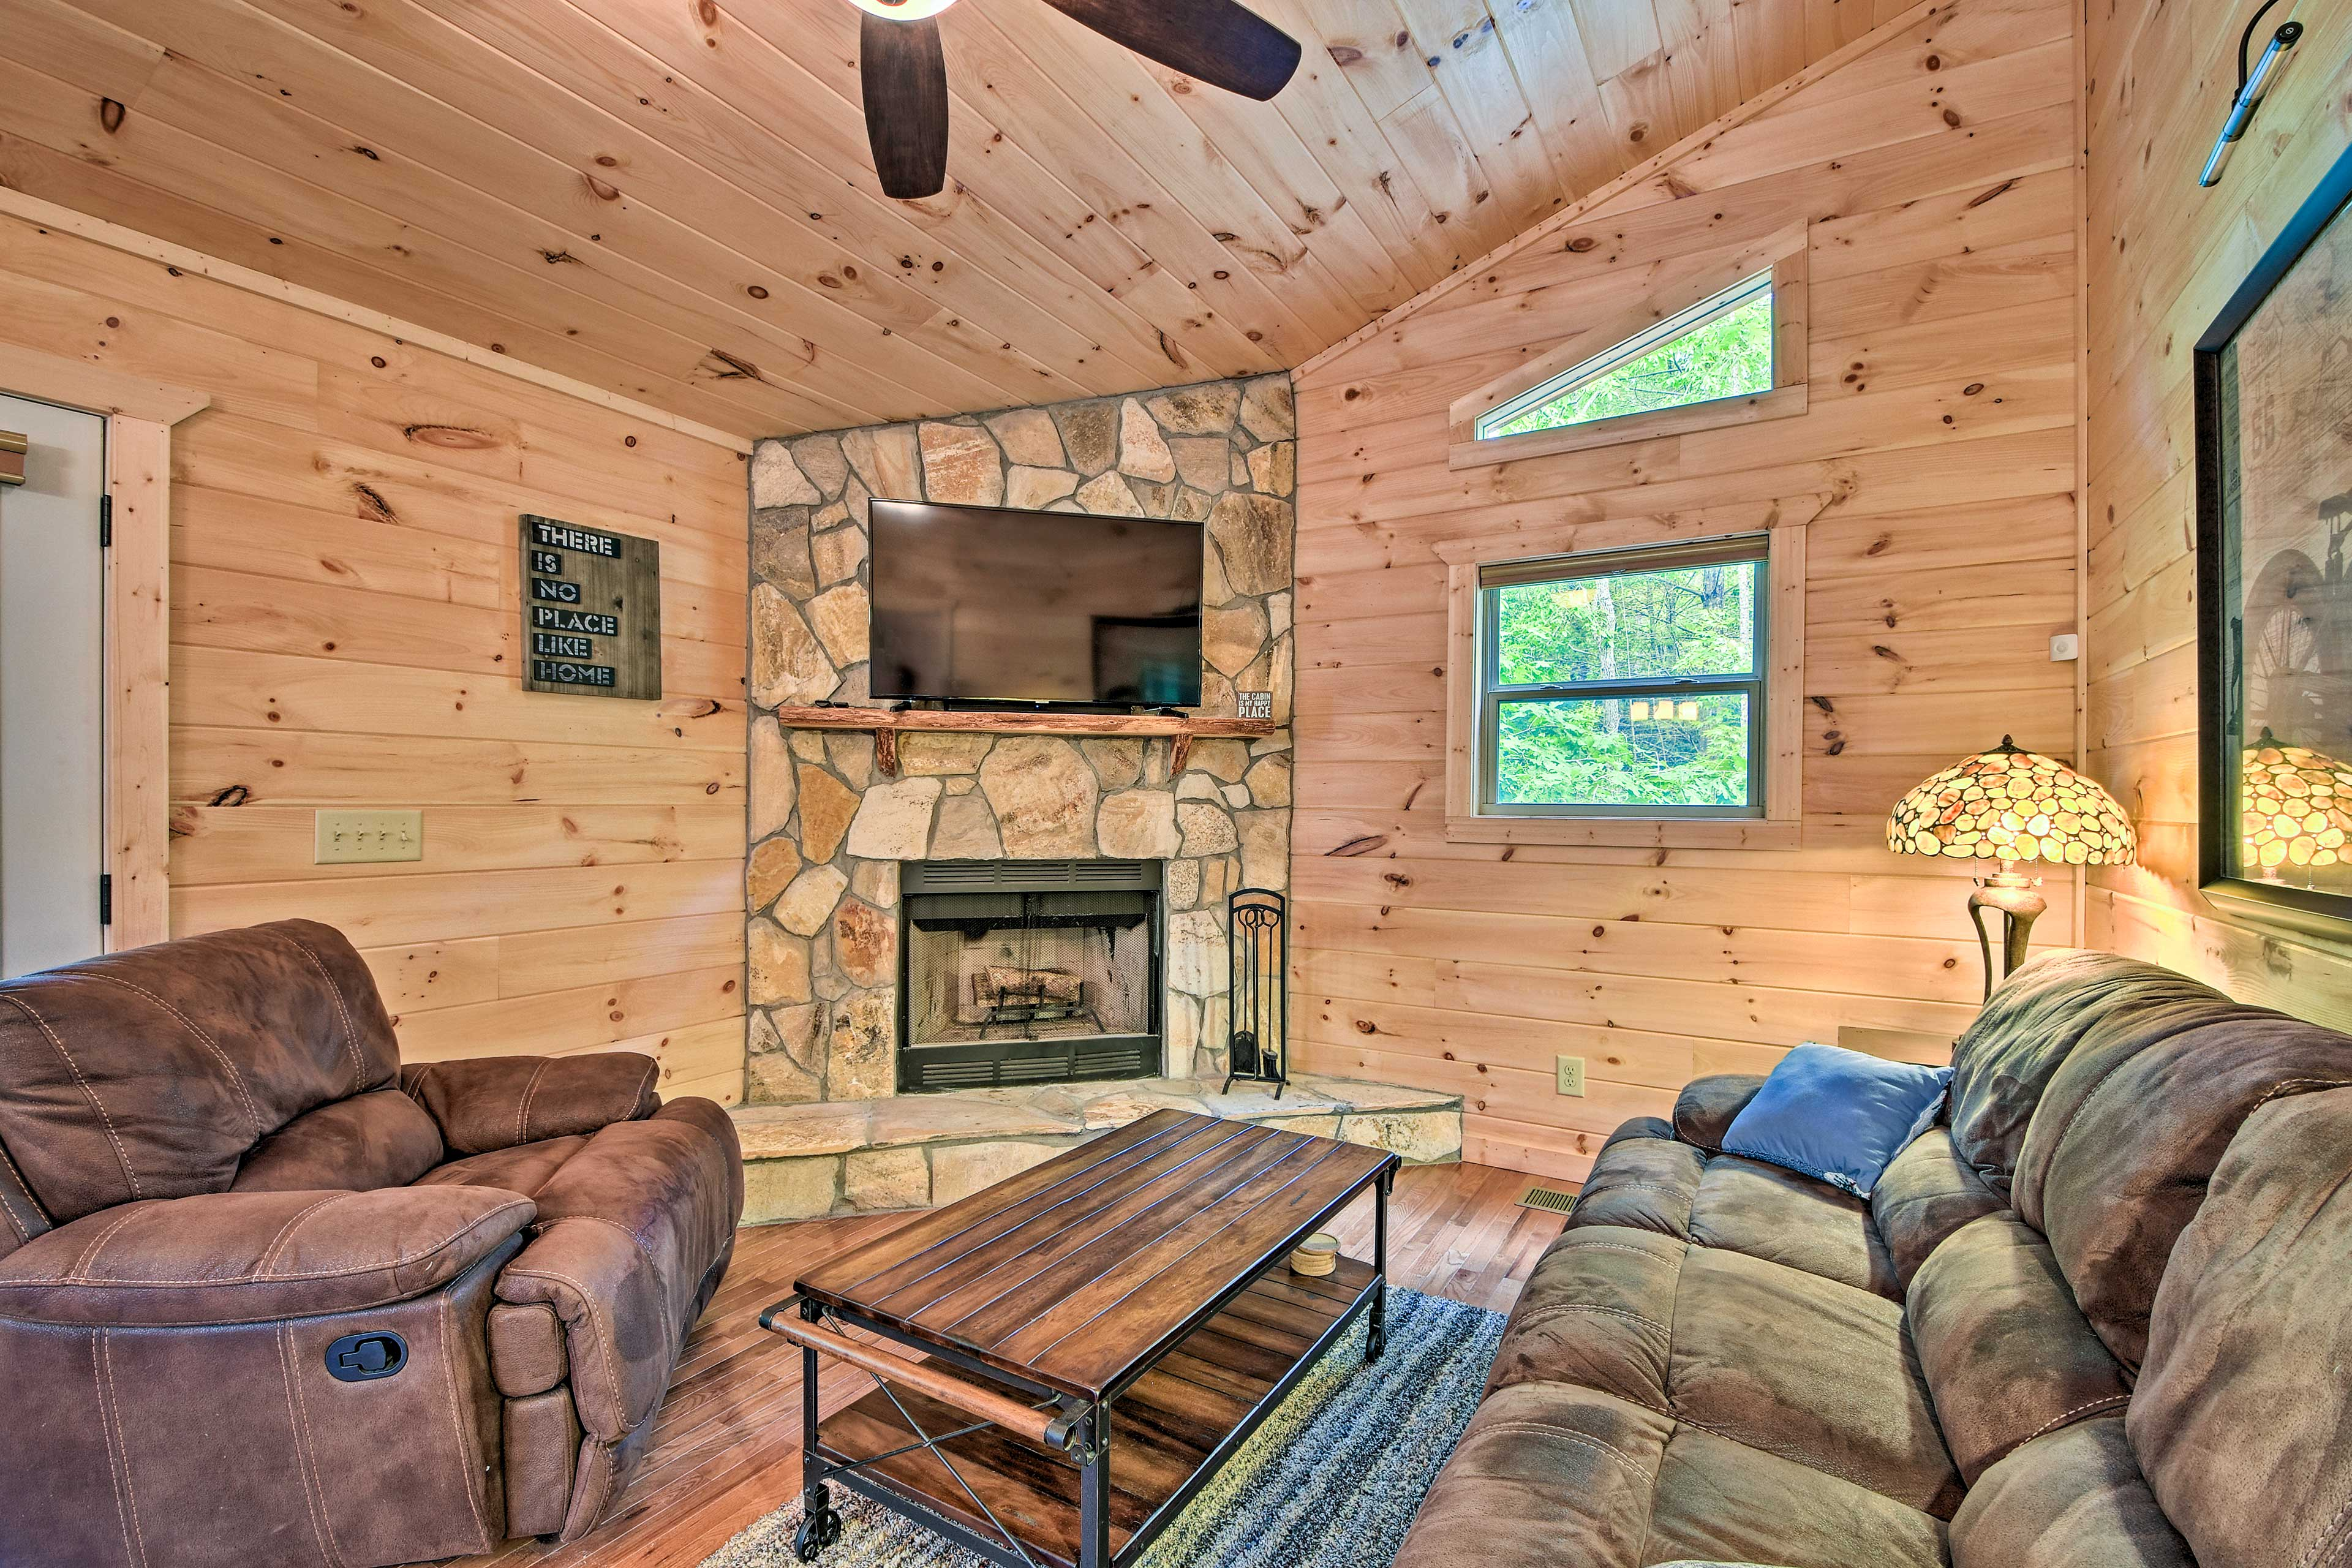 Enjoy a cozy at-home evening in front of the fireplace and Smart TV.